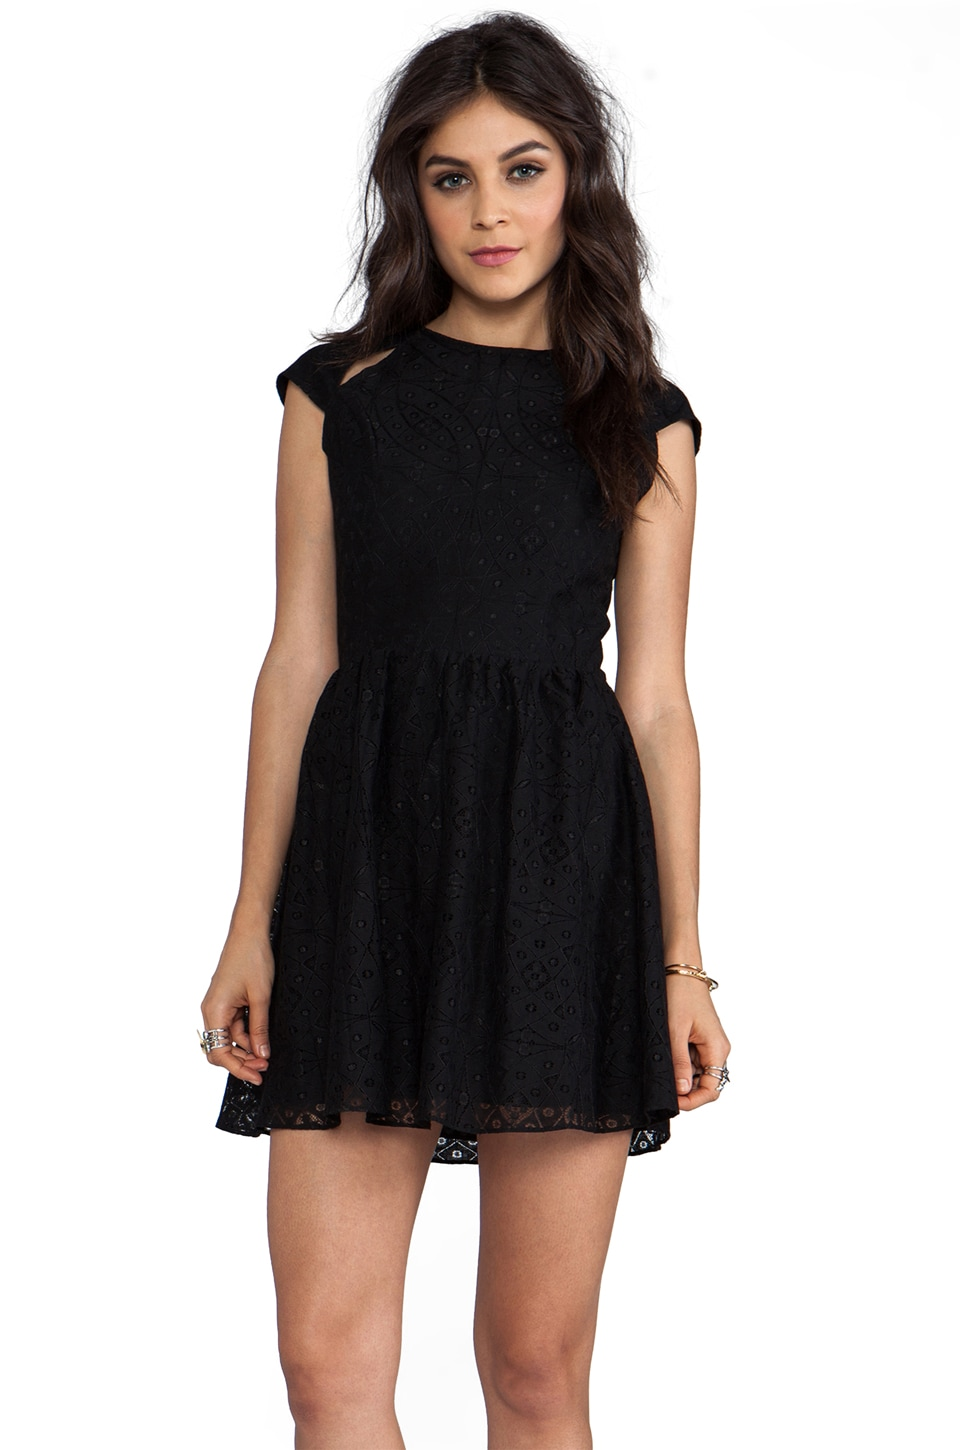 Dolce Vita Alishia Pattern Lace Dress in Black